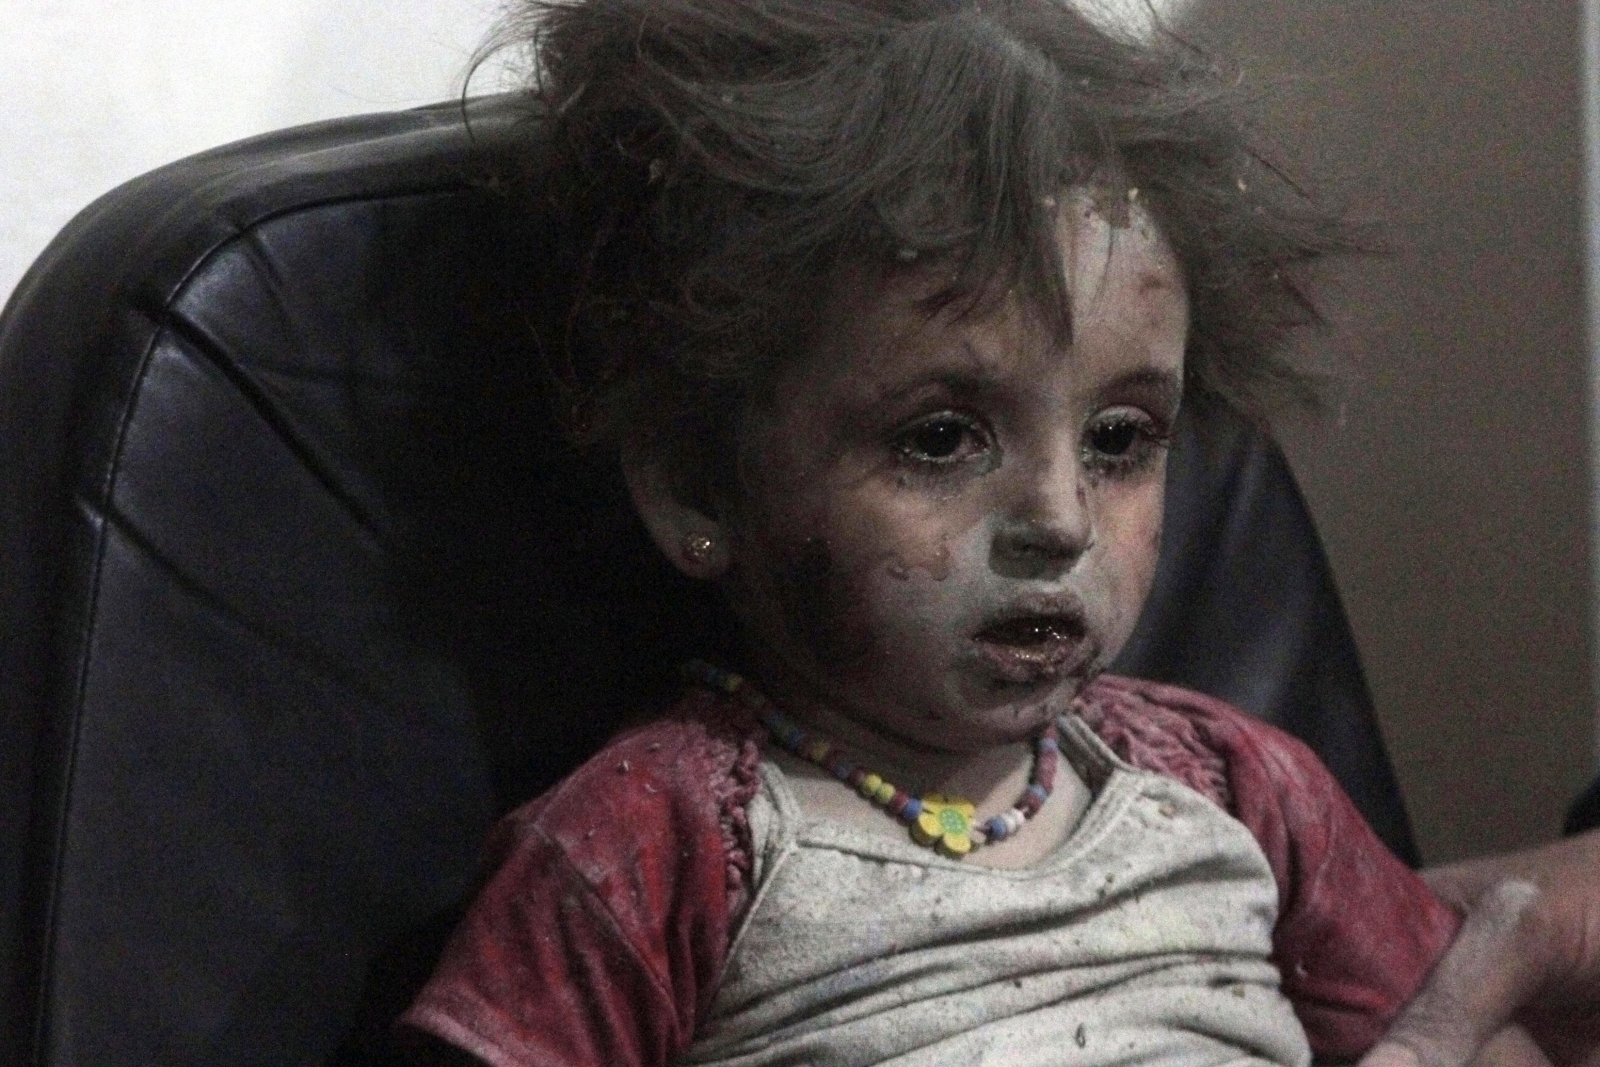 Injured Girl Child Syria Airstrike